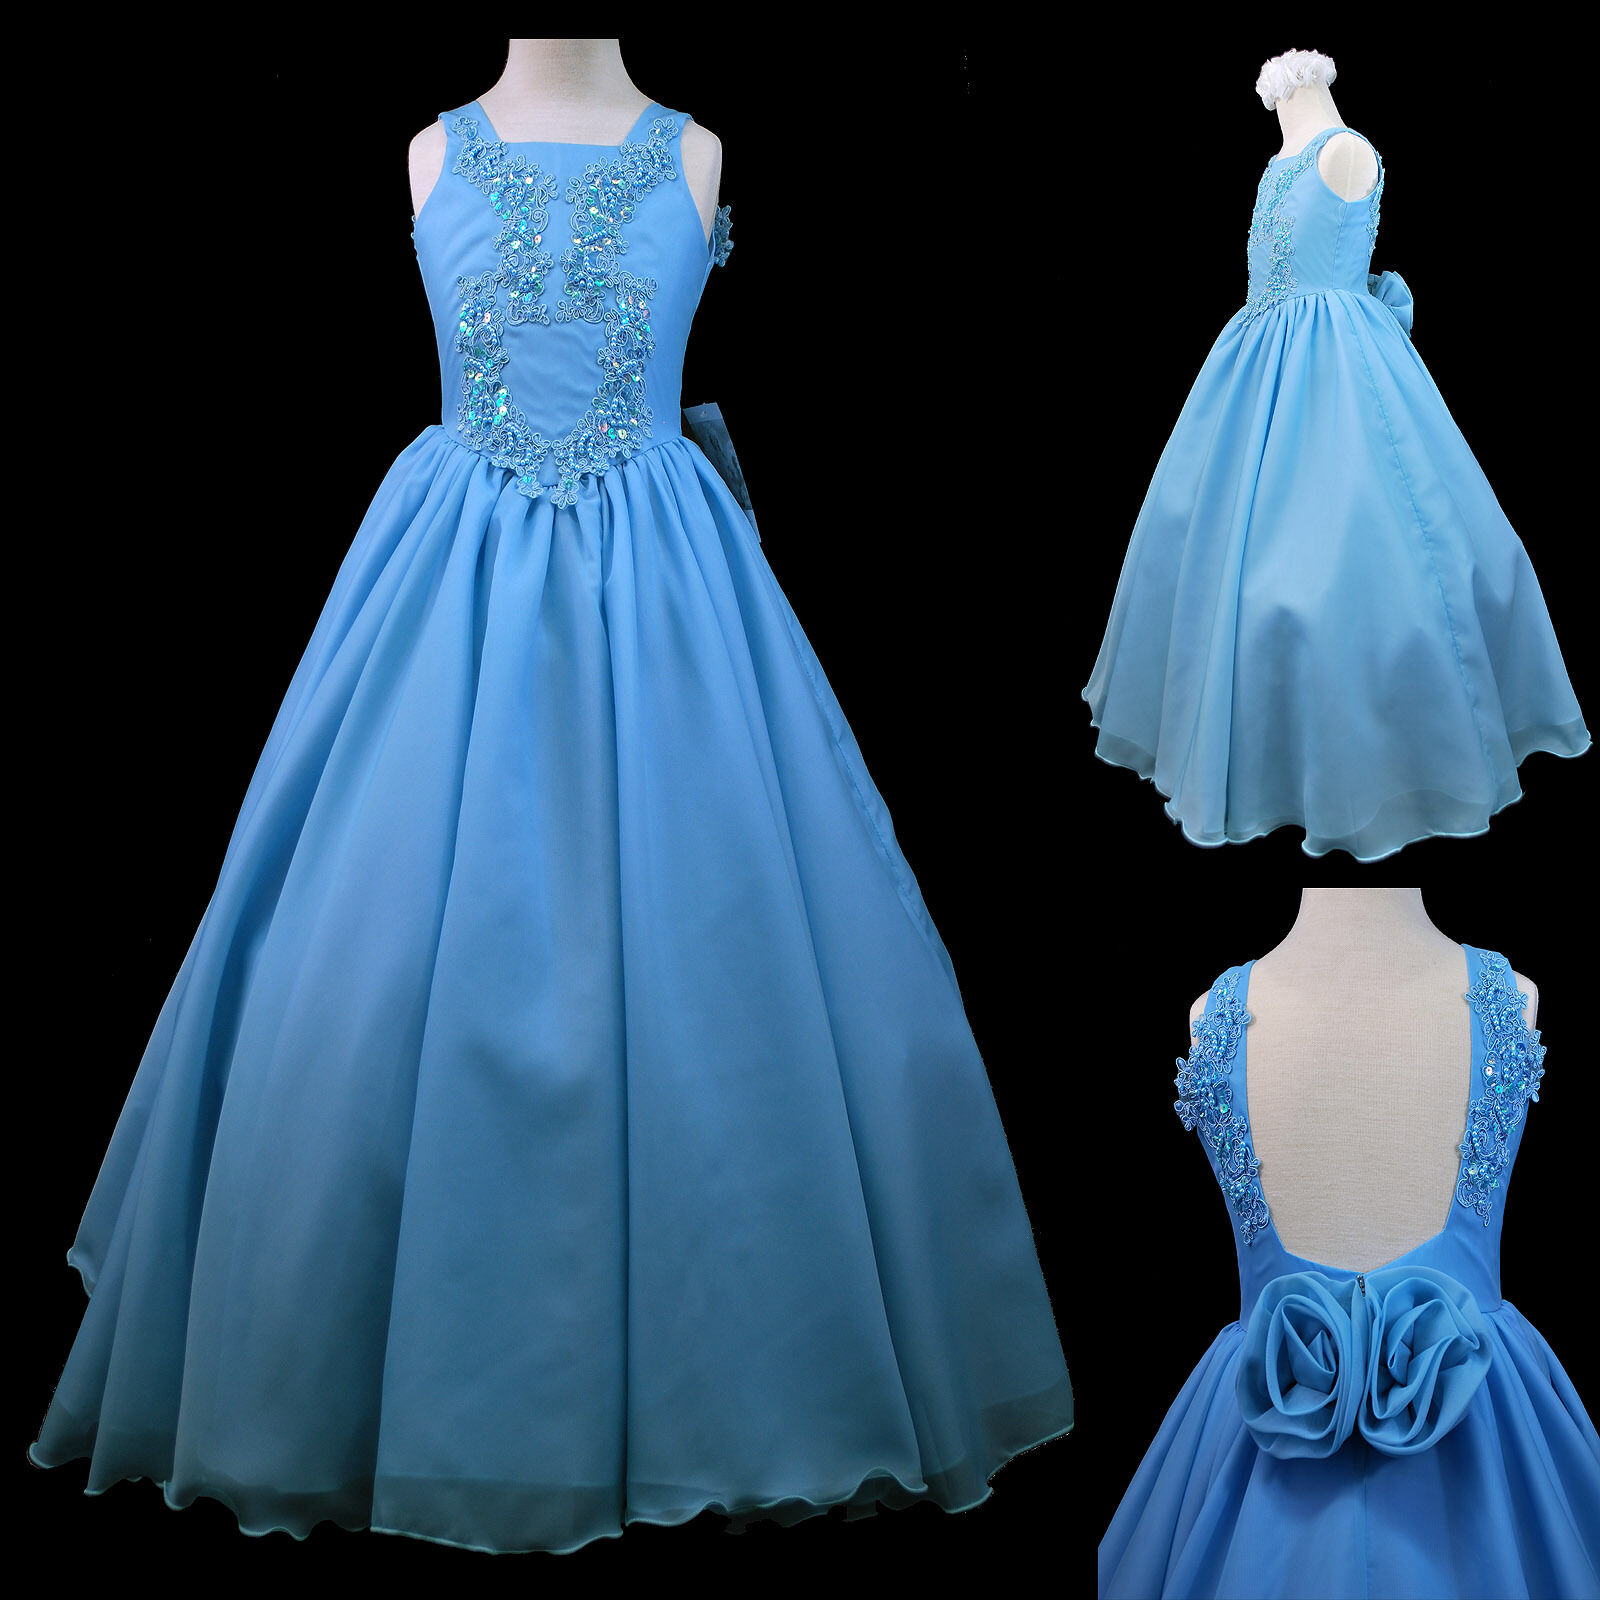 Blue Girl Pageant Wedding Dance Party Prom Recital Formal